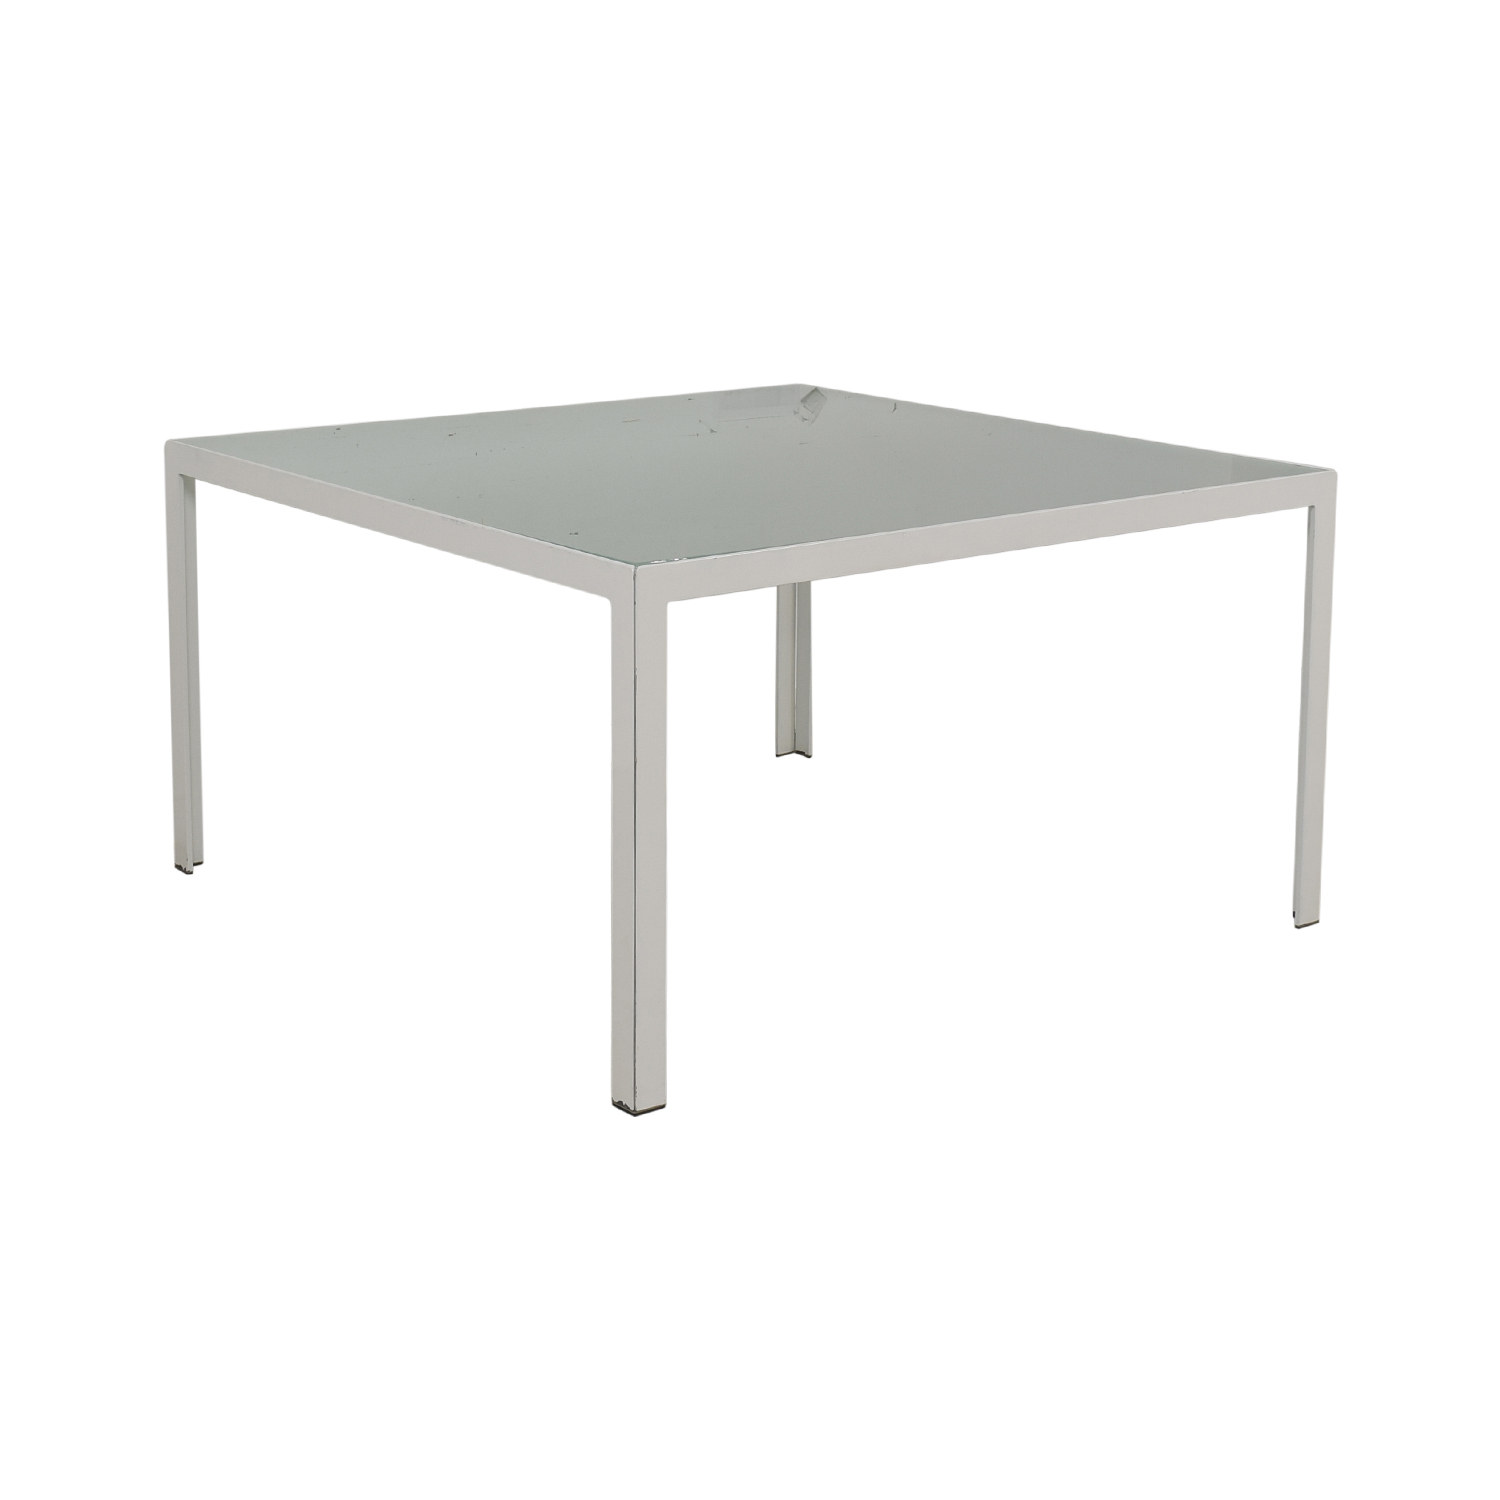 shop Monica Armani Monica Armani White and Glass Dining Table online